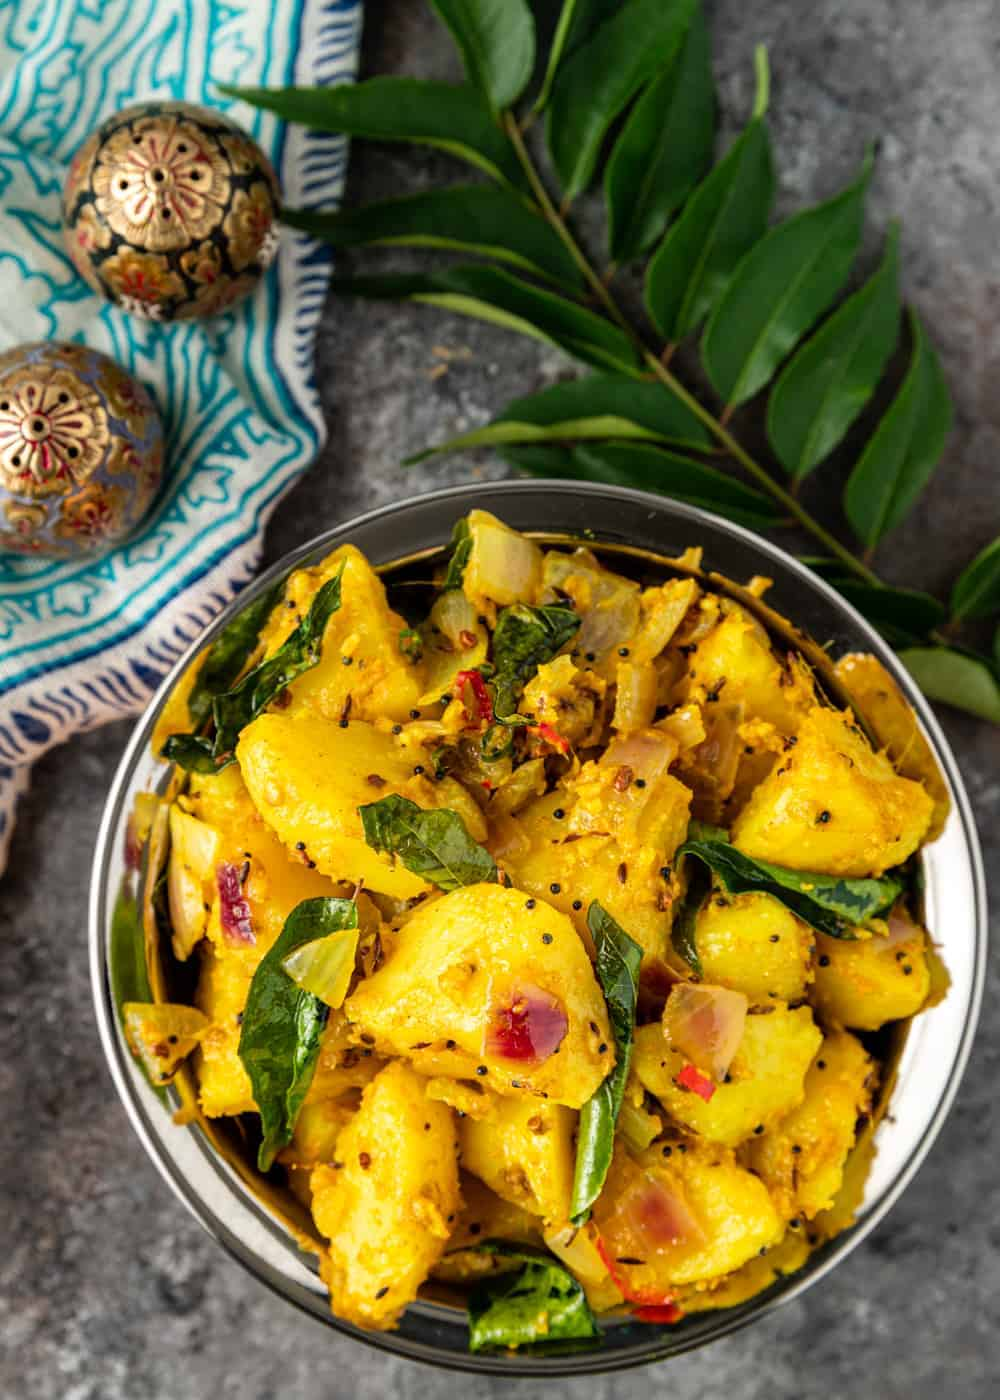 overhead image: dish of cooked potatoes with fresh herbs and Indian spices